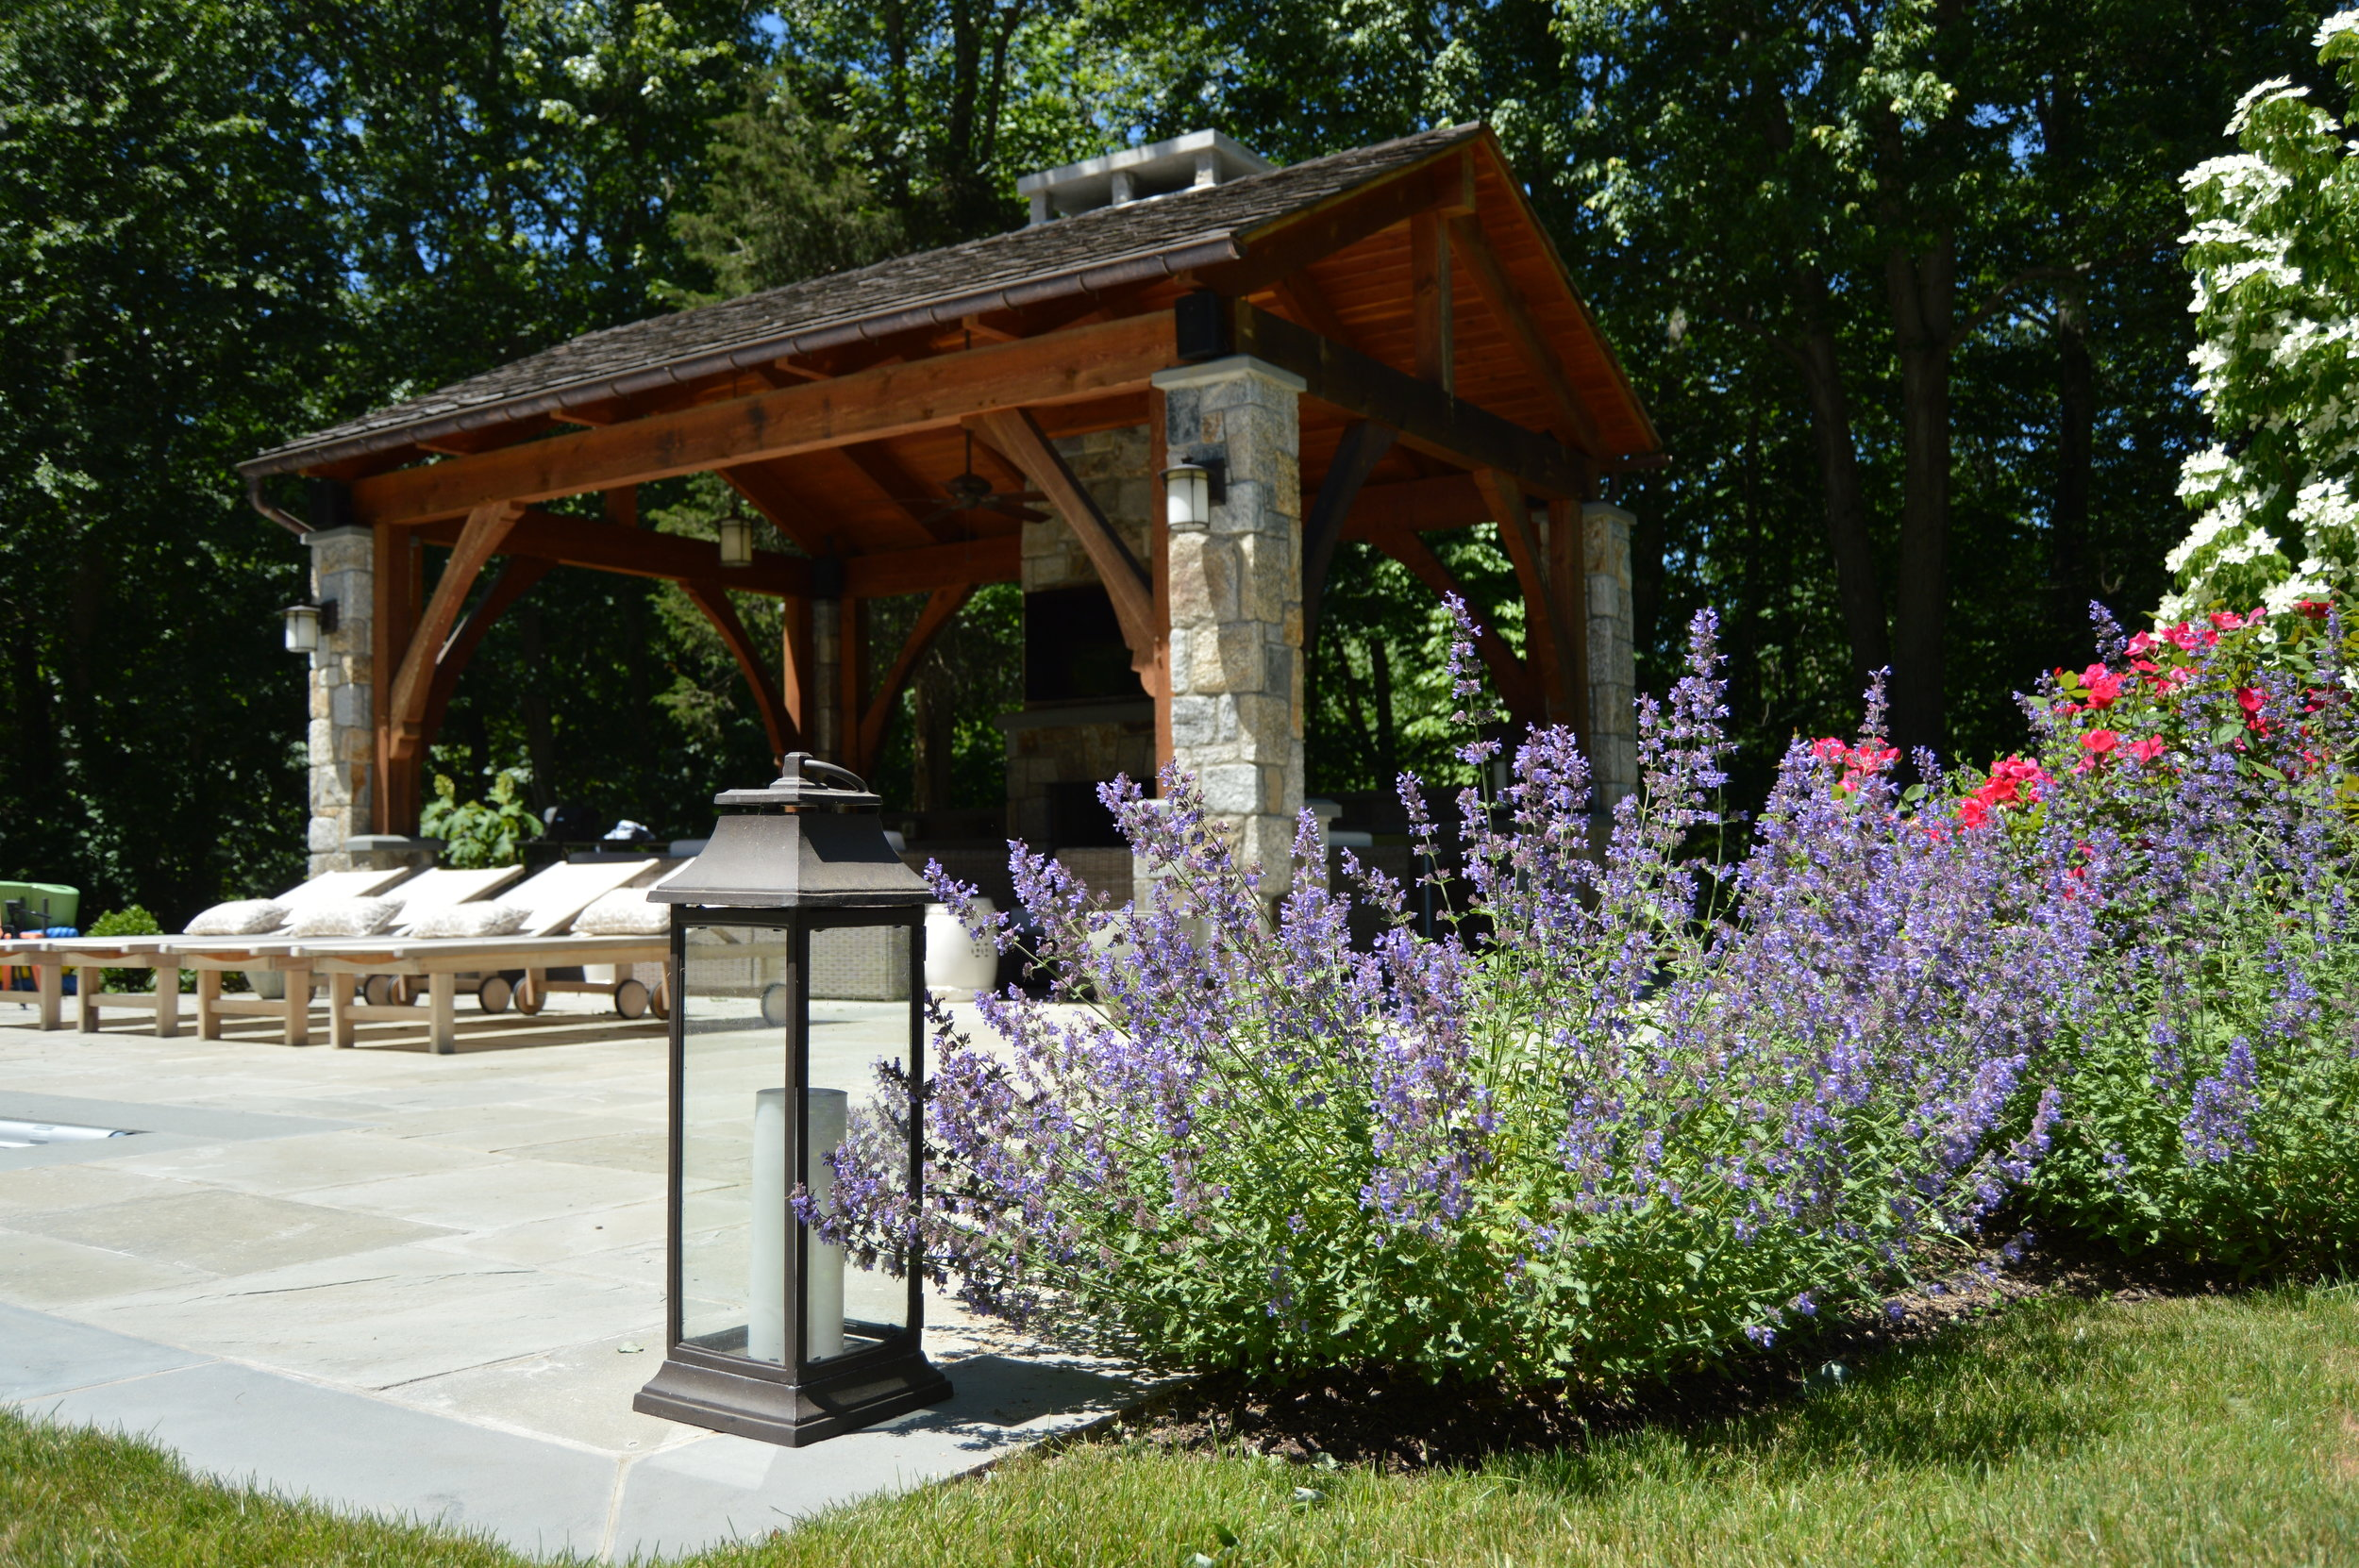 Why Winter is a Great Time for Peekskill NY Landscape Construction